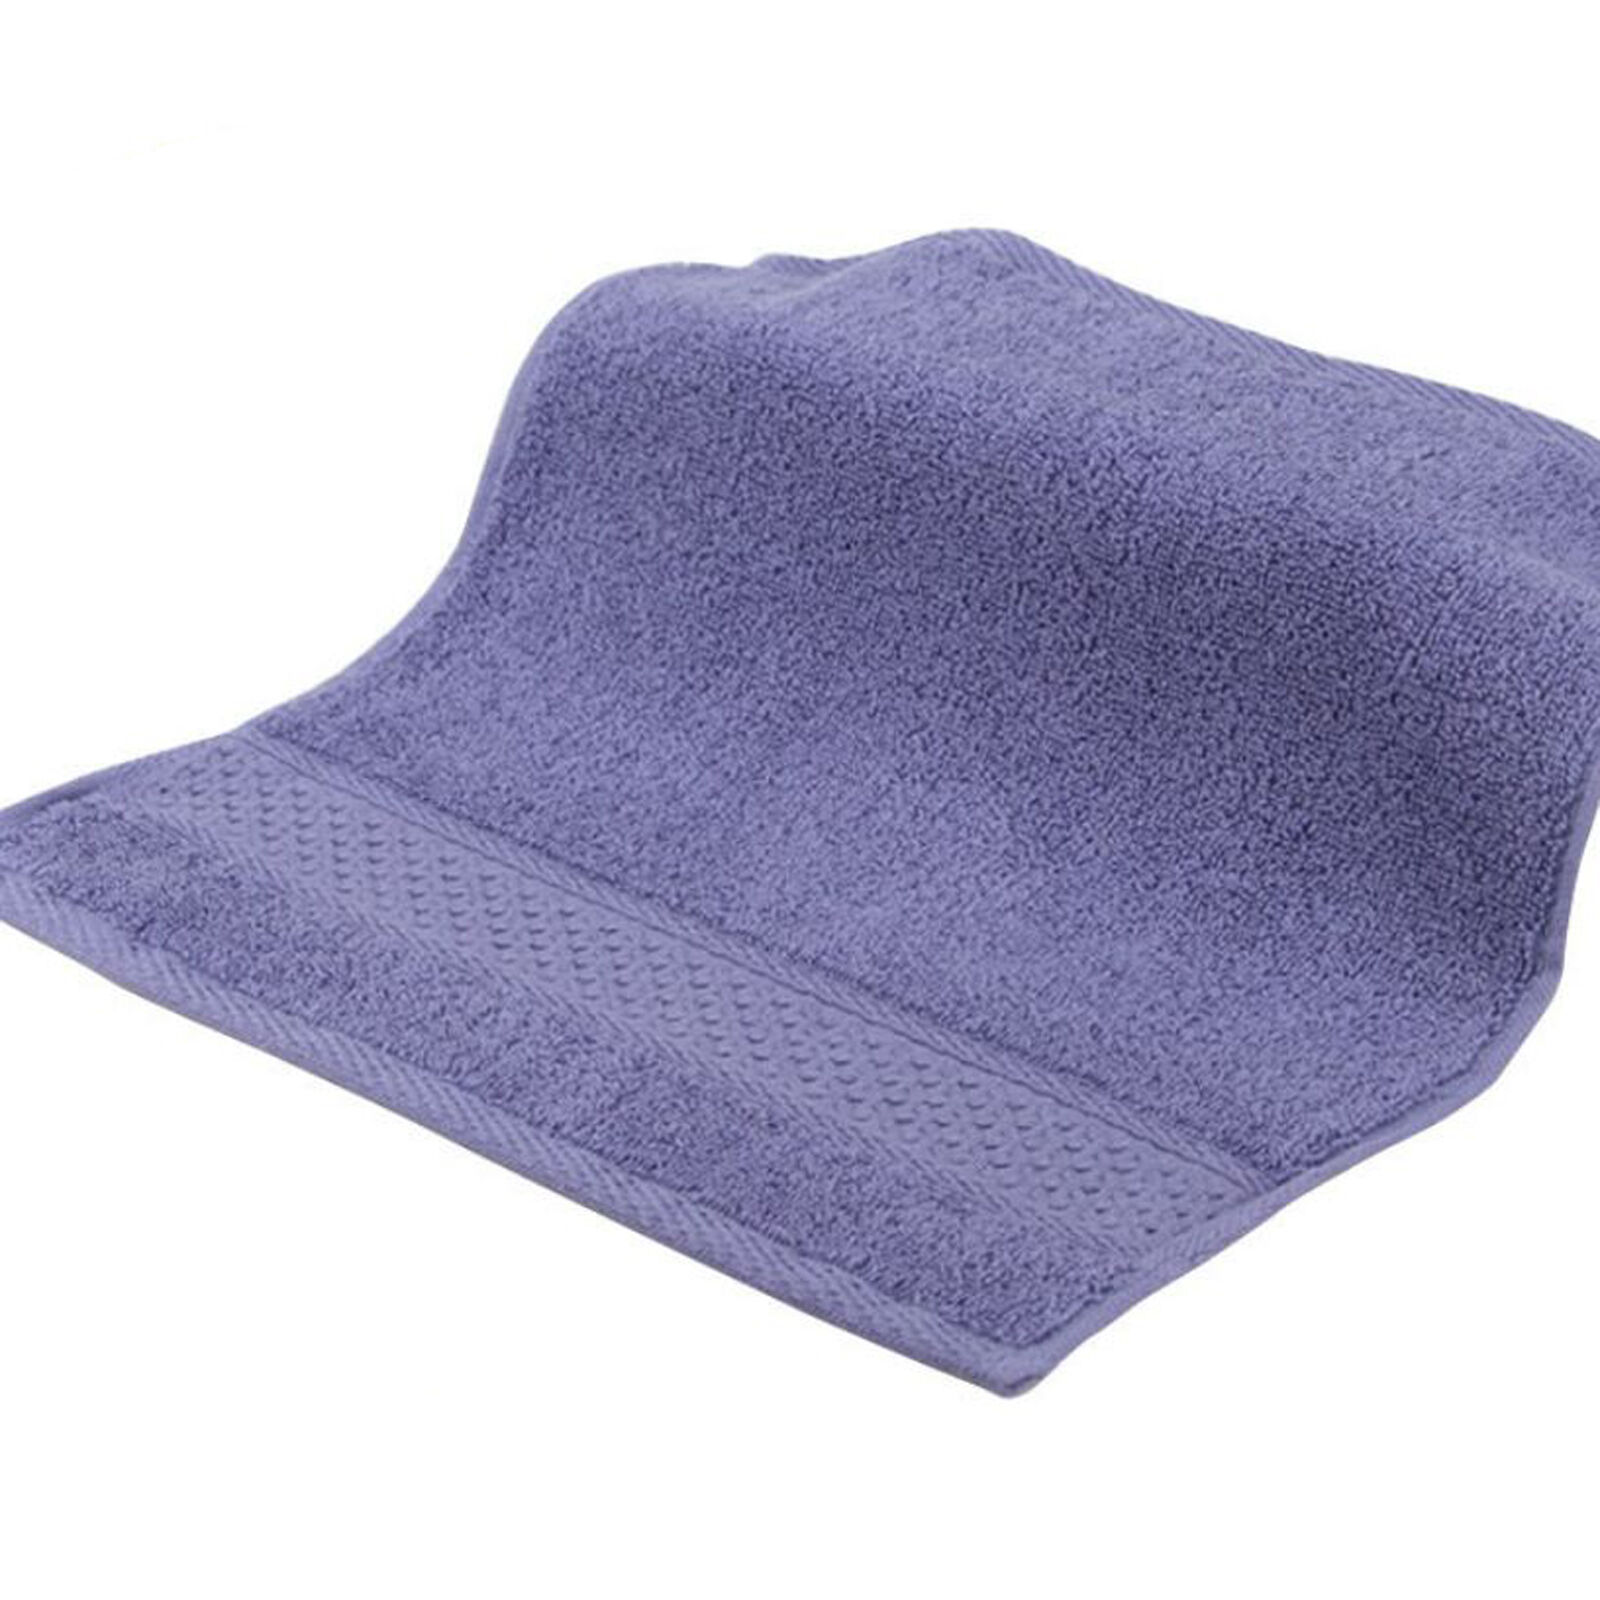 Hot Sale 100/% Cotton Face Towels 34x34cm Cloth Flannels Wash Cloths Gift Packed.